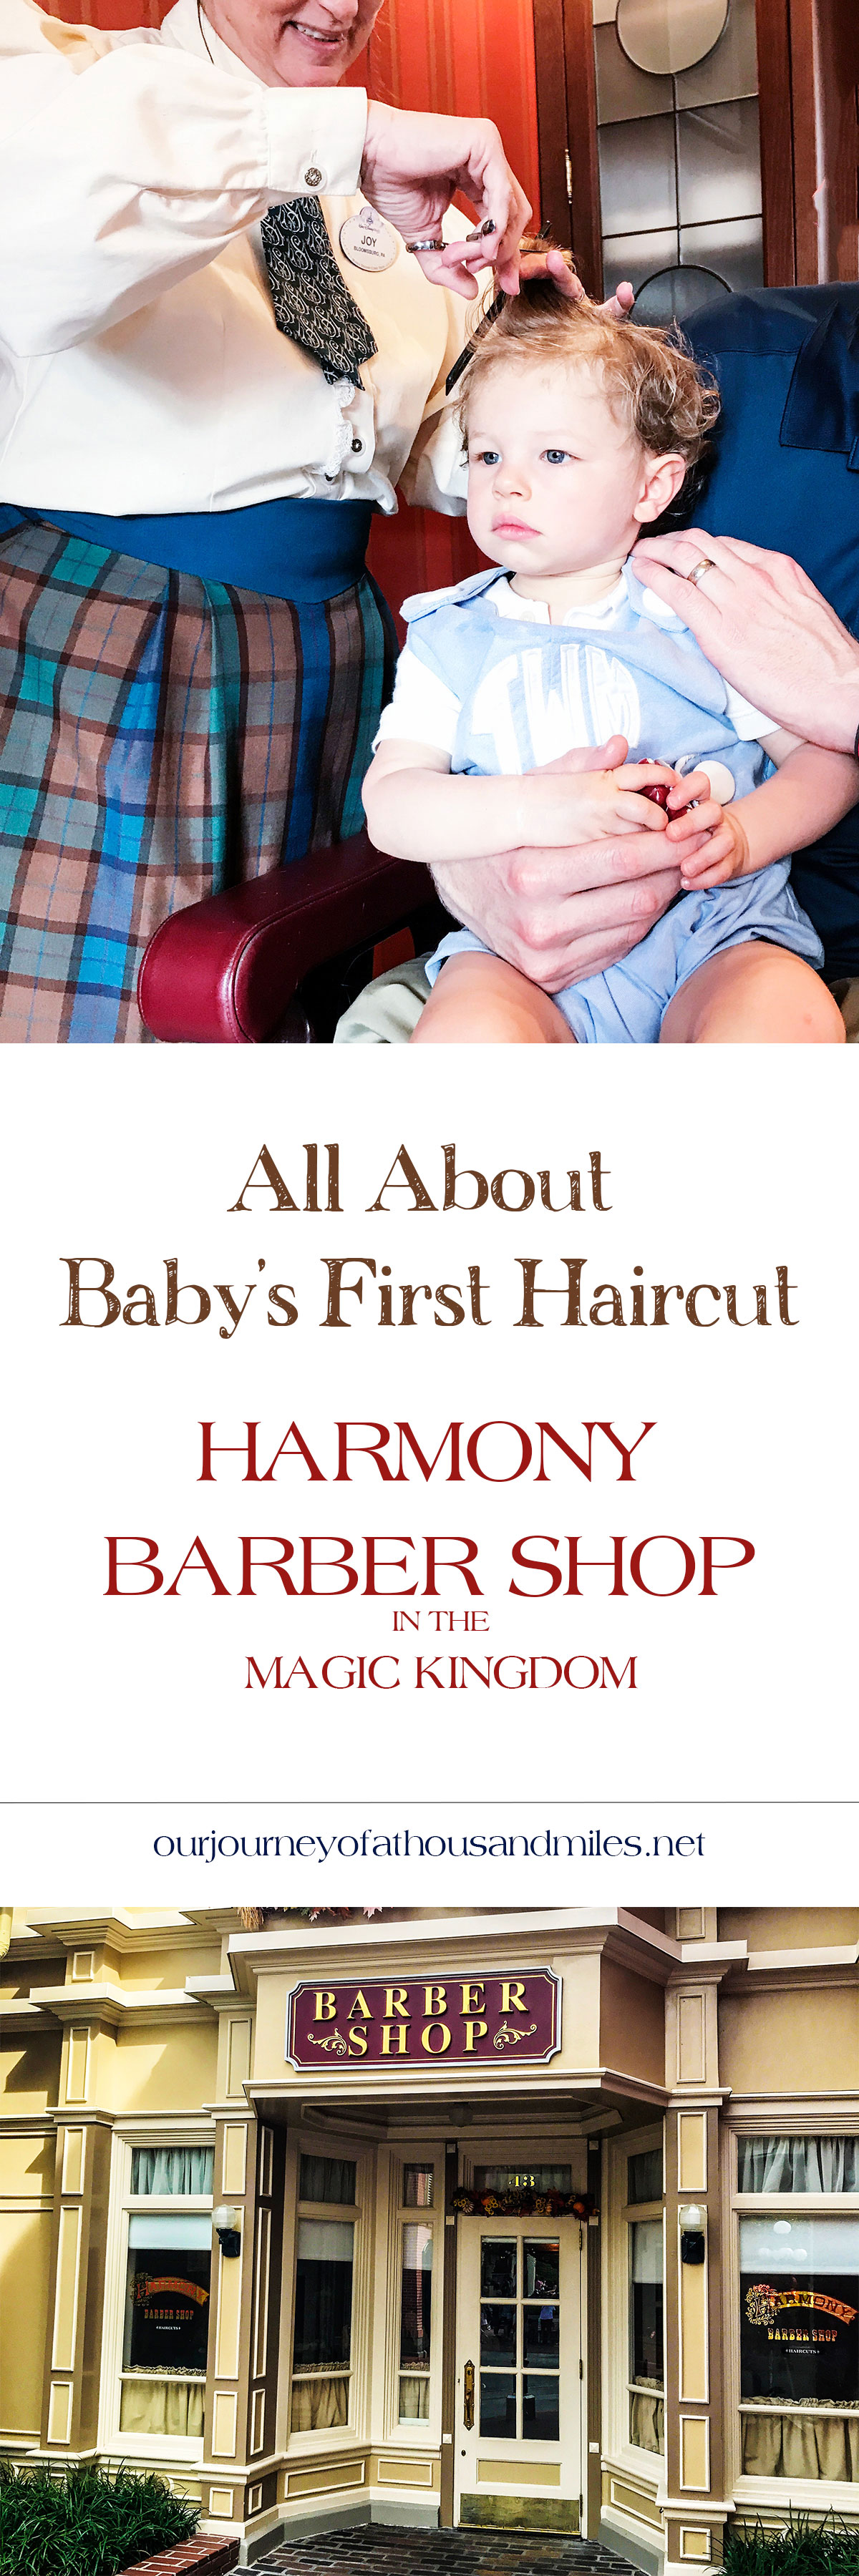 All-About-Babys-First-Haircut-At-Harmony-Barber-Shop-Magic-Kingdom